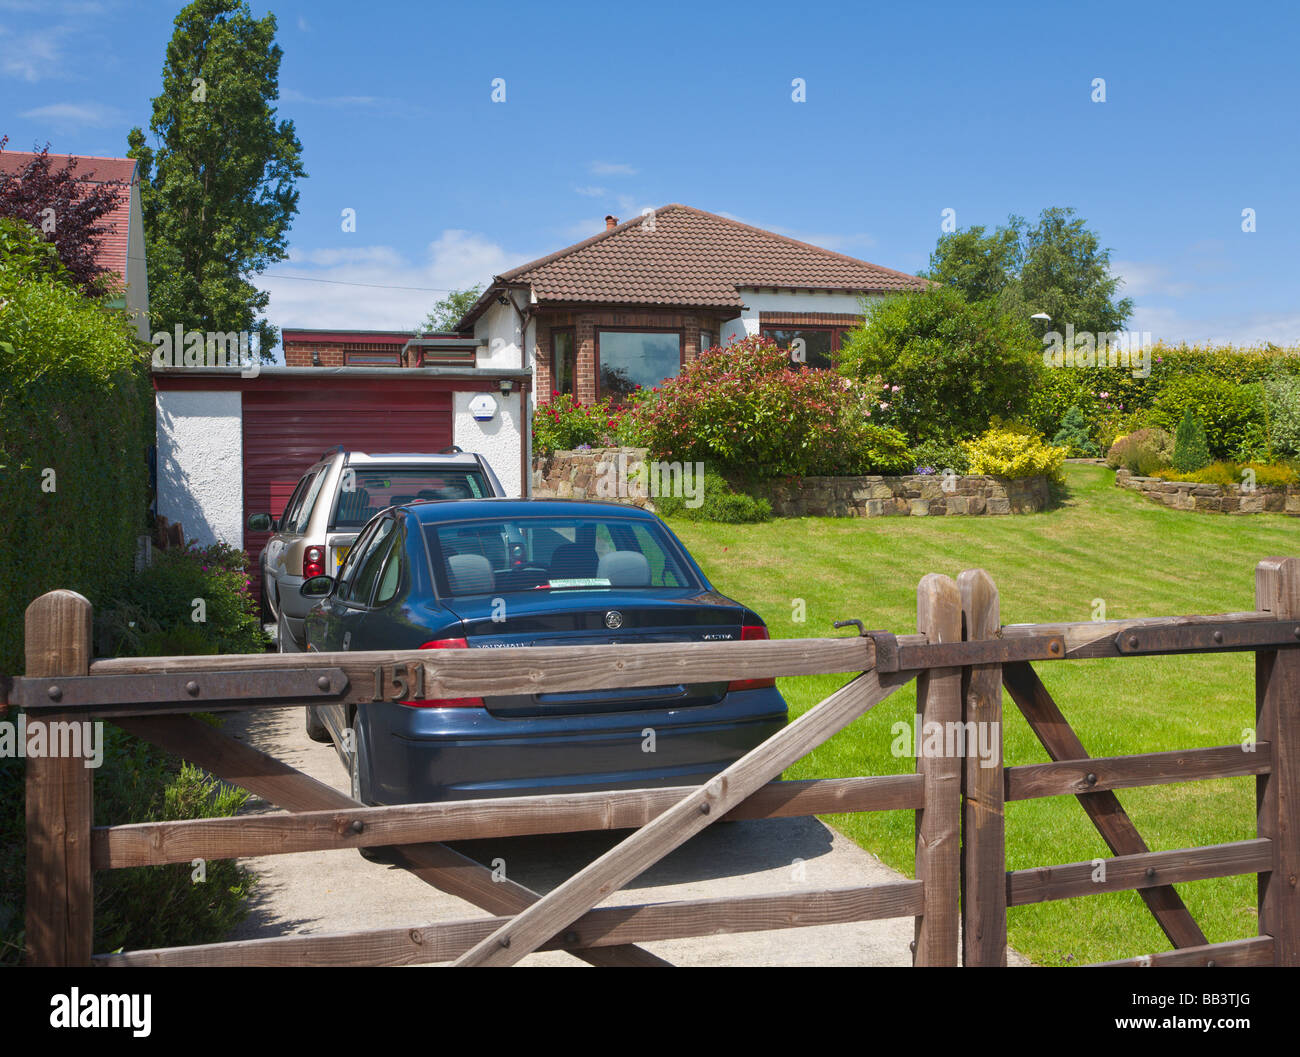 Driveway and garage of detached bungalow with parked cars - Stock Image